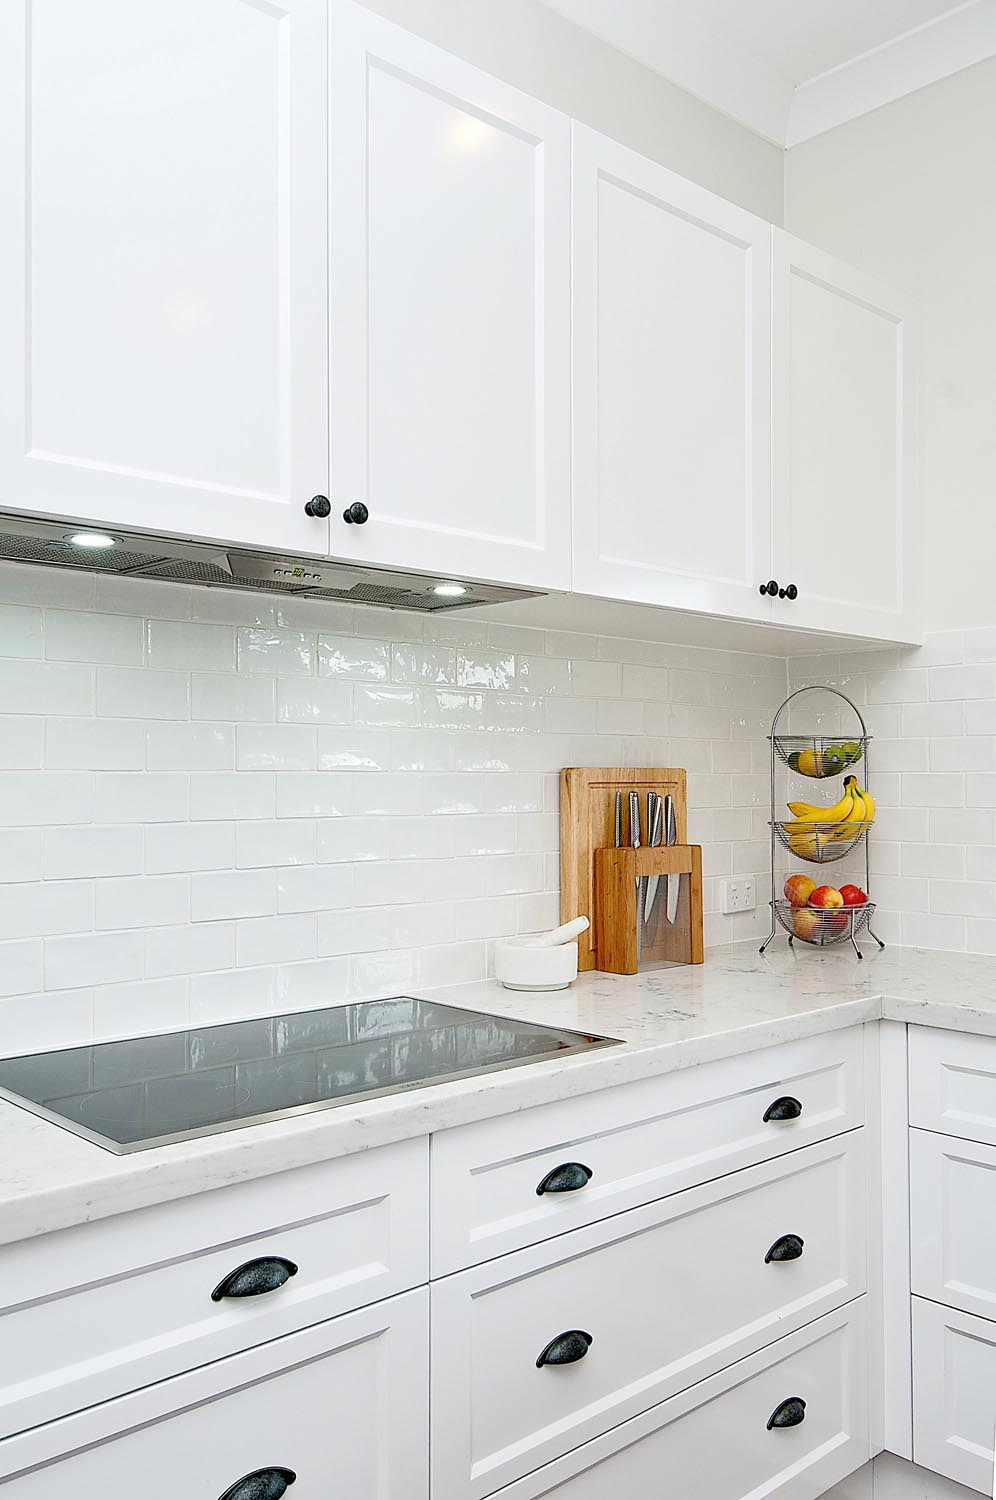 The clean cabinetry in this kitchen creates storage space and a beautiful effect